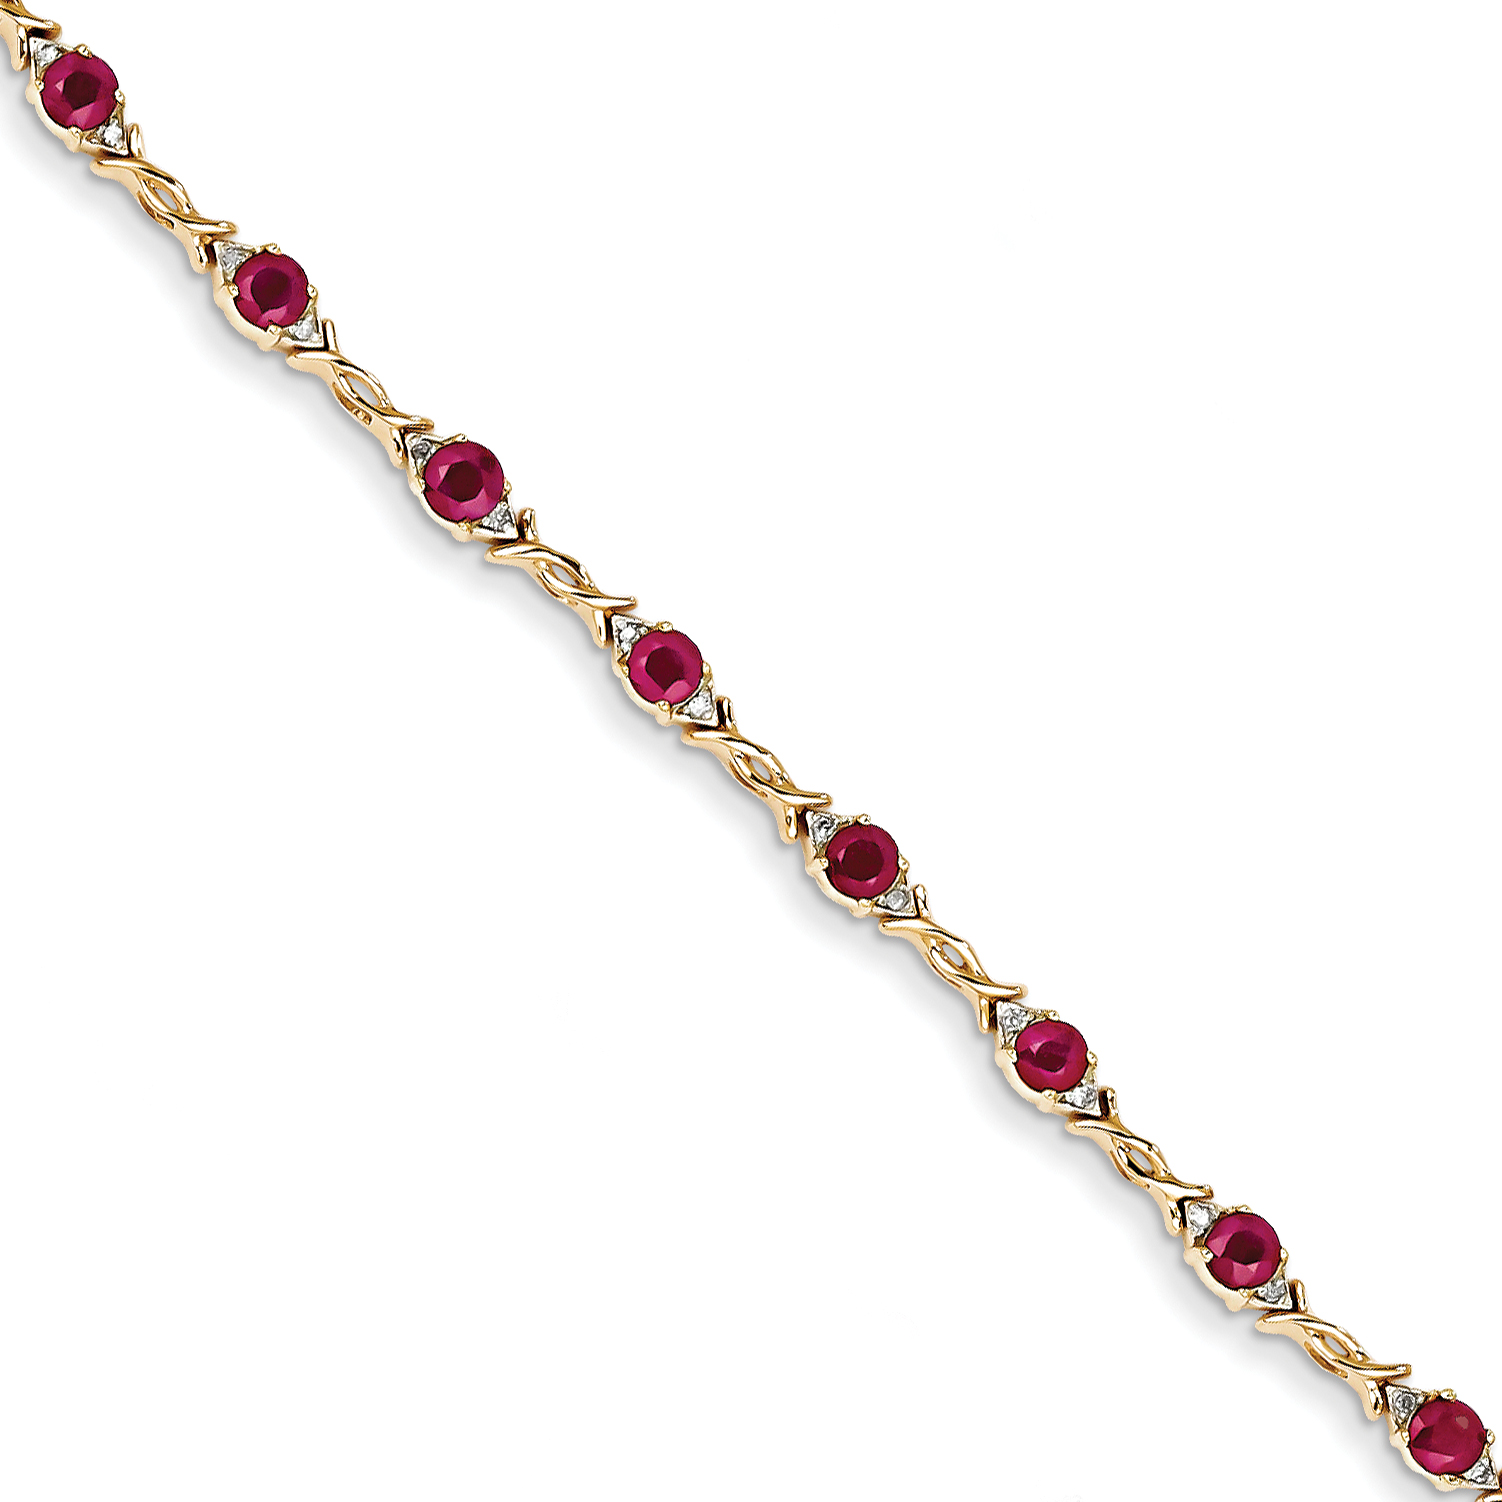 14K Yellow Gold Diamond and Ruby Bracelet by Saris and Things QG